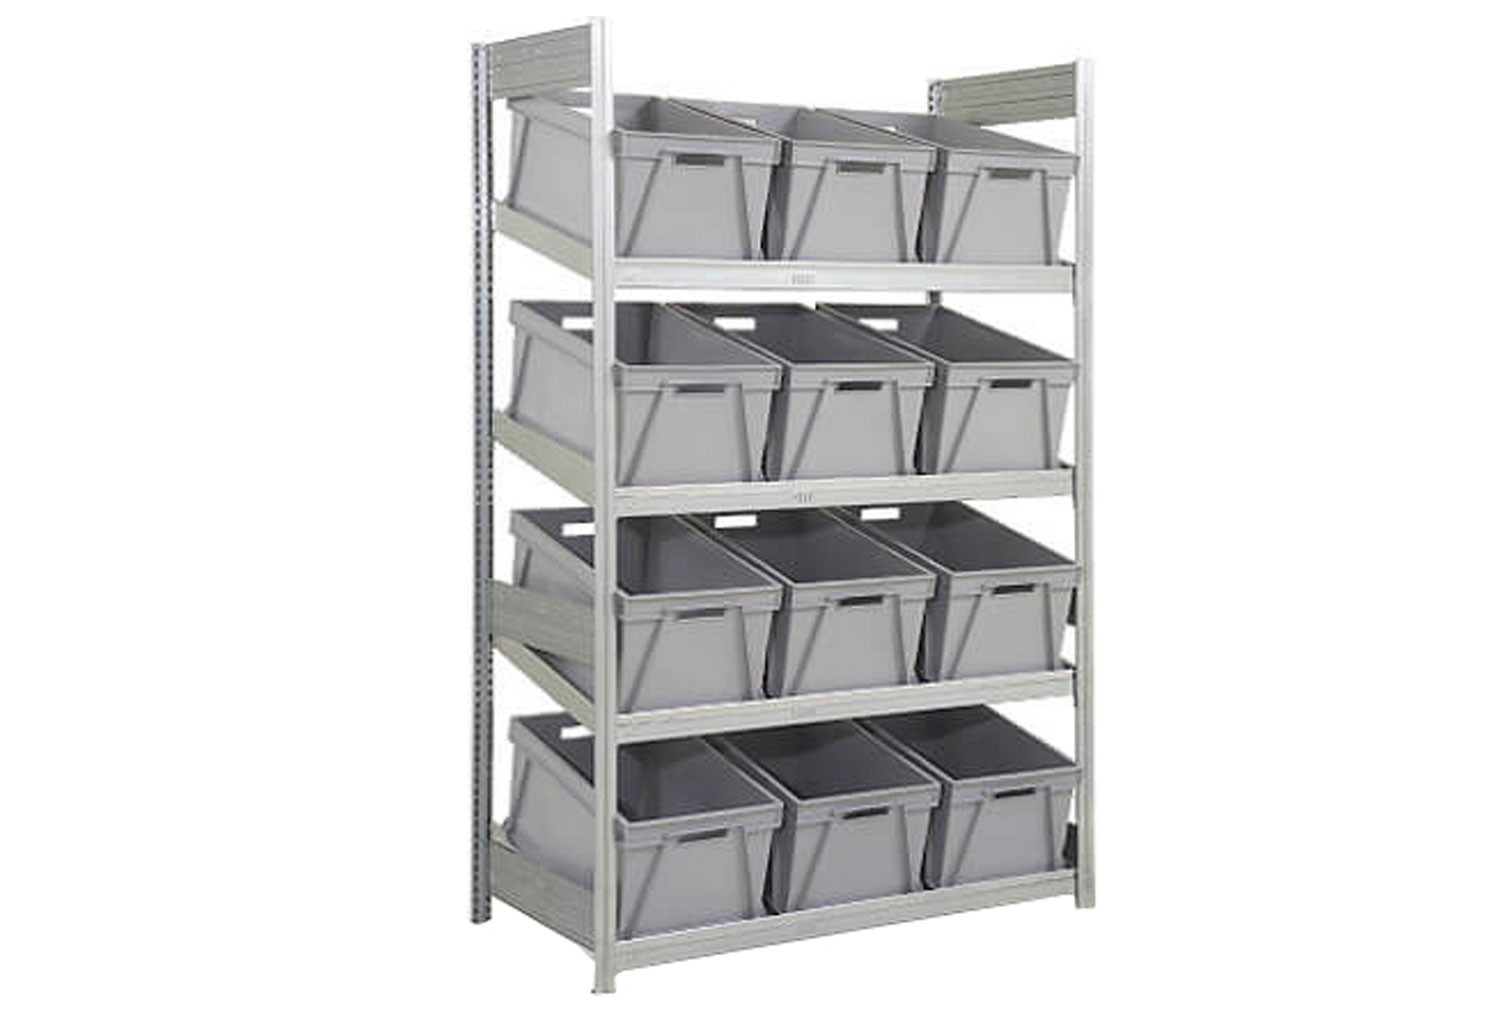 Single depth galvanized sloping shelves with 12 plastic boxes